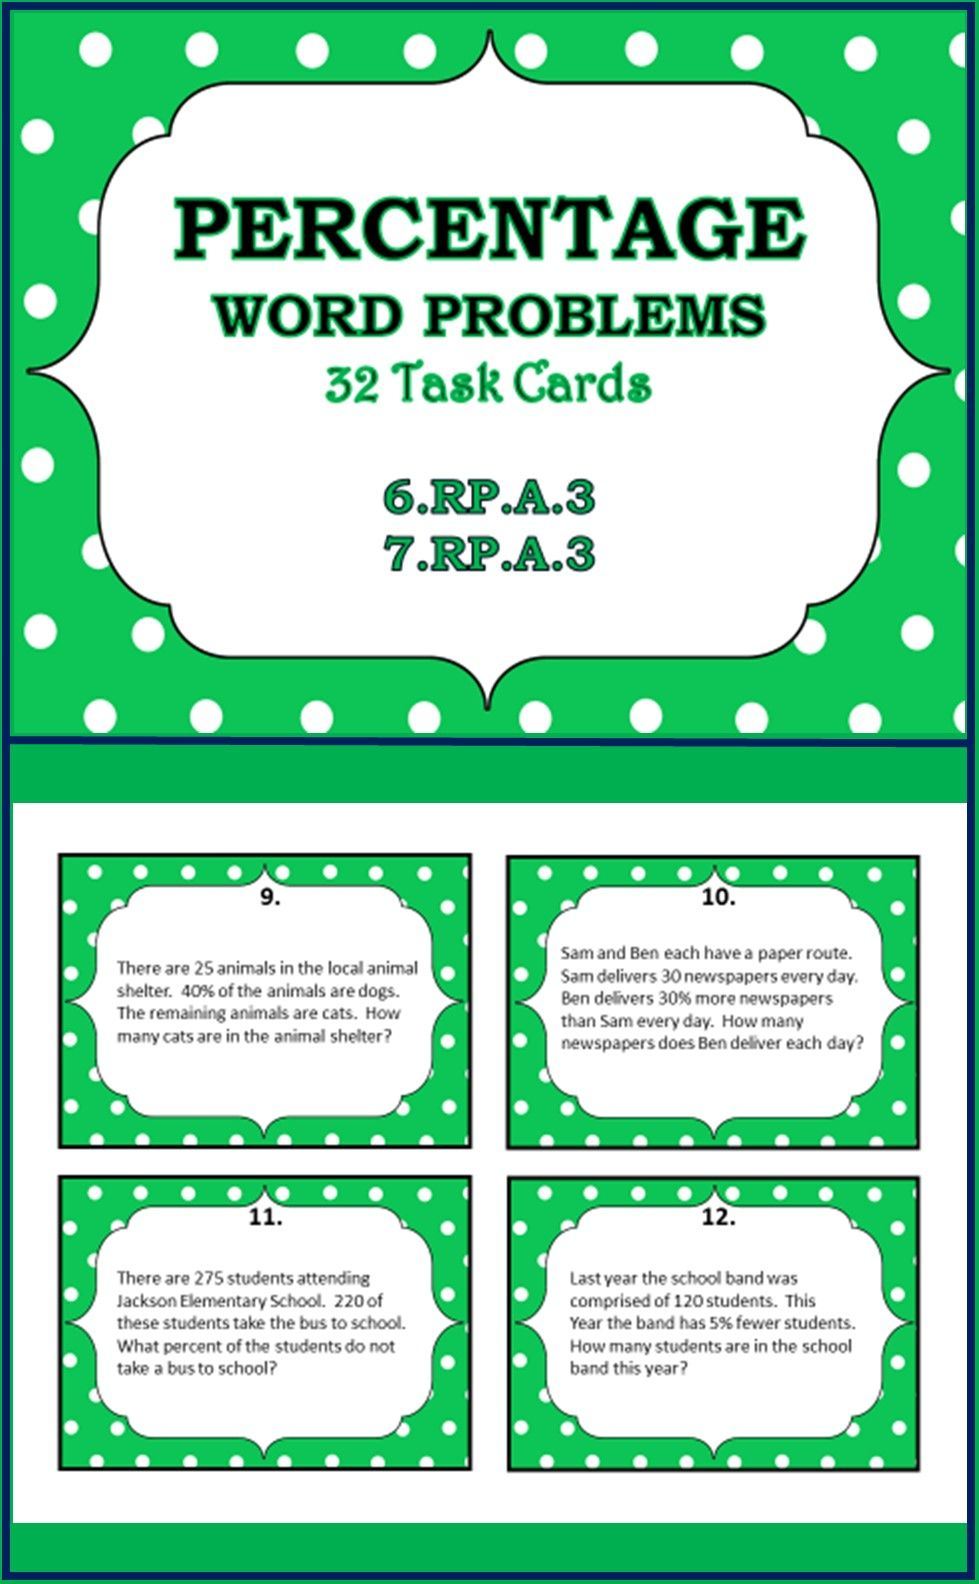 Percentage Word Problems Word Problems Fraction Word Problems Teaching Math